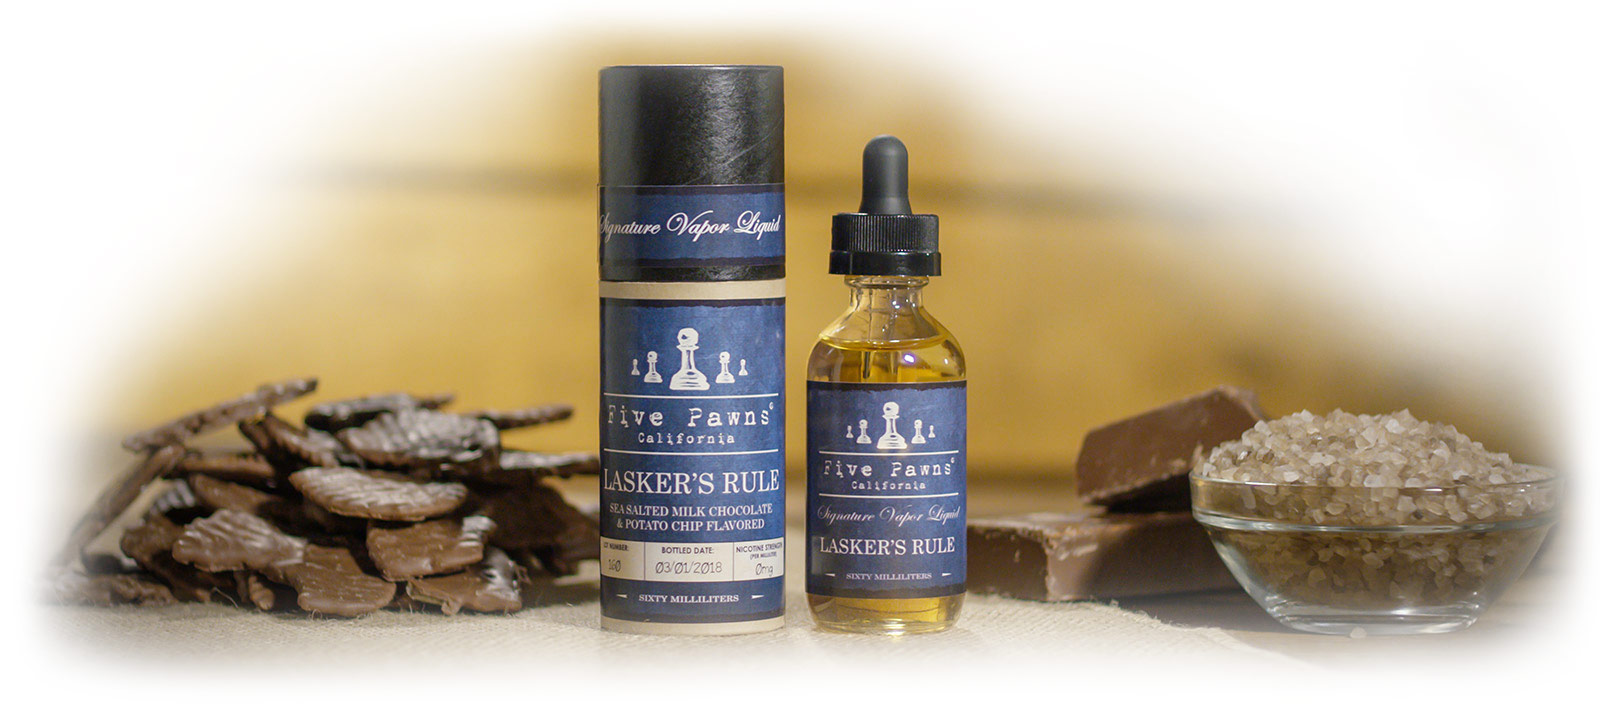 LASKER´S RULE - FIVE PAWNS 50ML (BOOSTER) (promoção exclusiva online e limitada ao stock existente*)